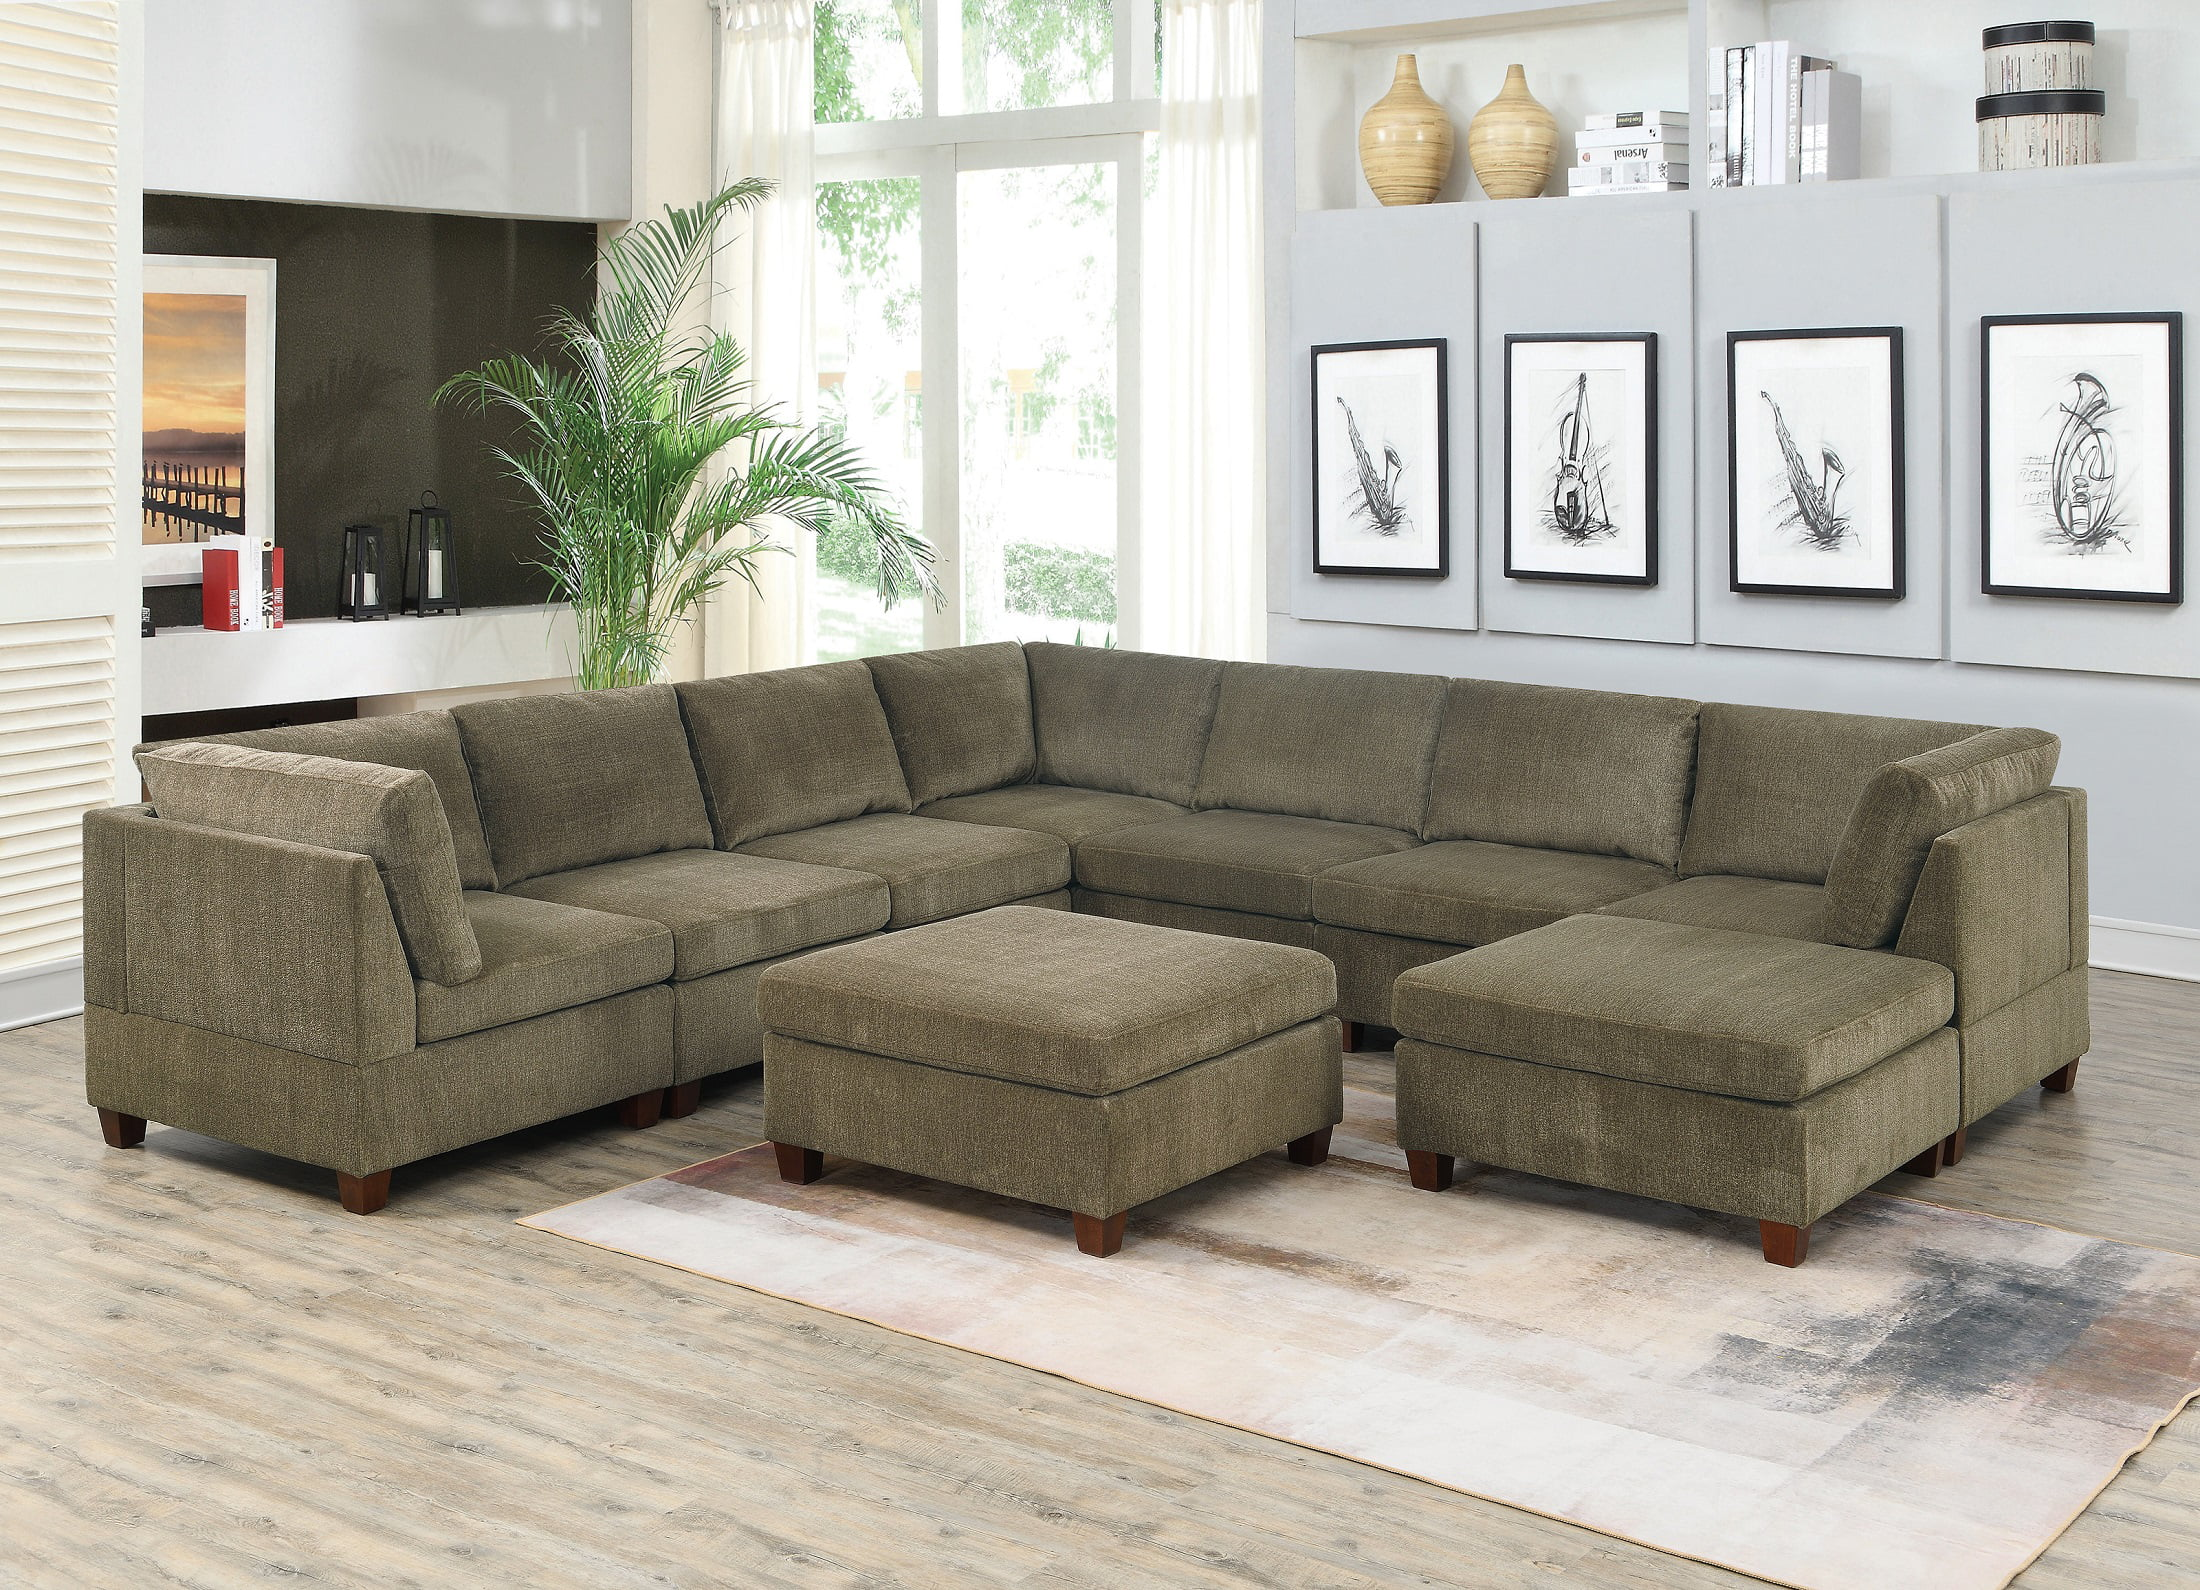 Contemporary Modern Unique Modular 9pc Sectional Sofa Set Tan Color Chenille Fabric Wood Legs 3 X Corner Wedge 4x Armless Chairs And 2 X Ottoman Walmart Com Walmart Com